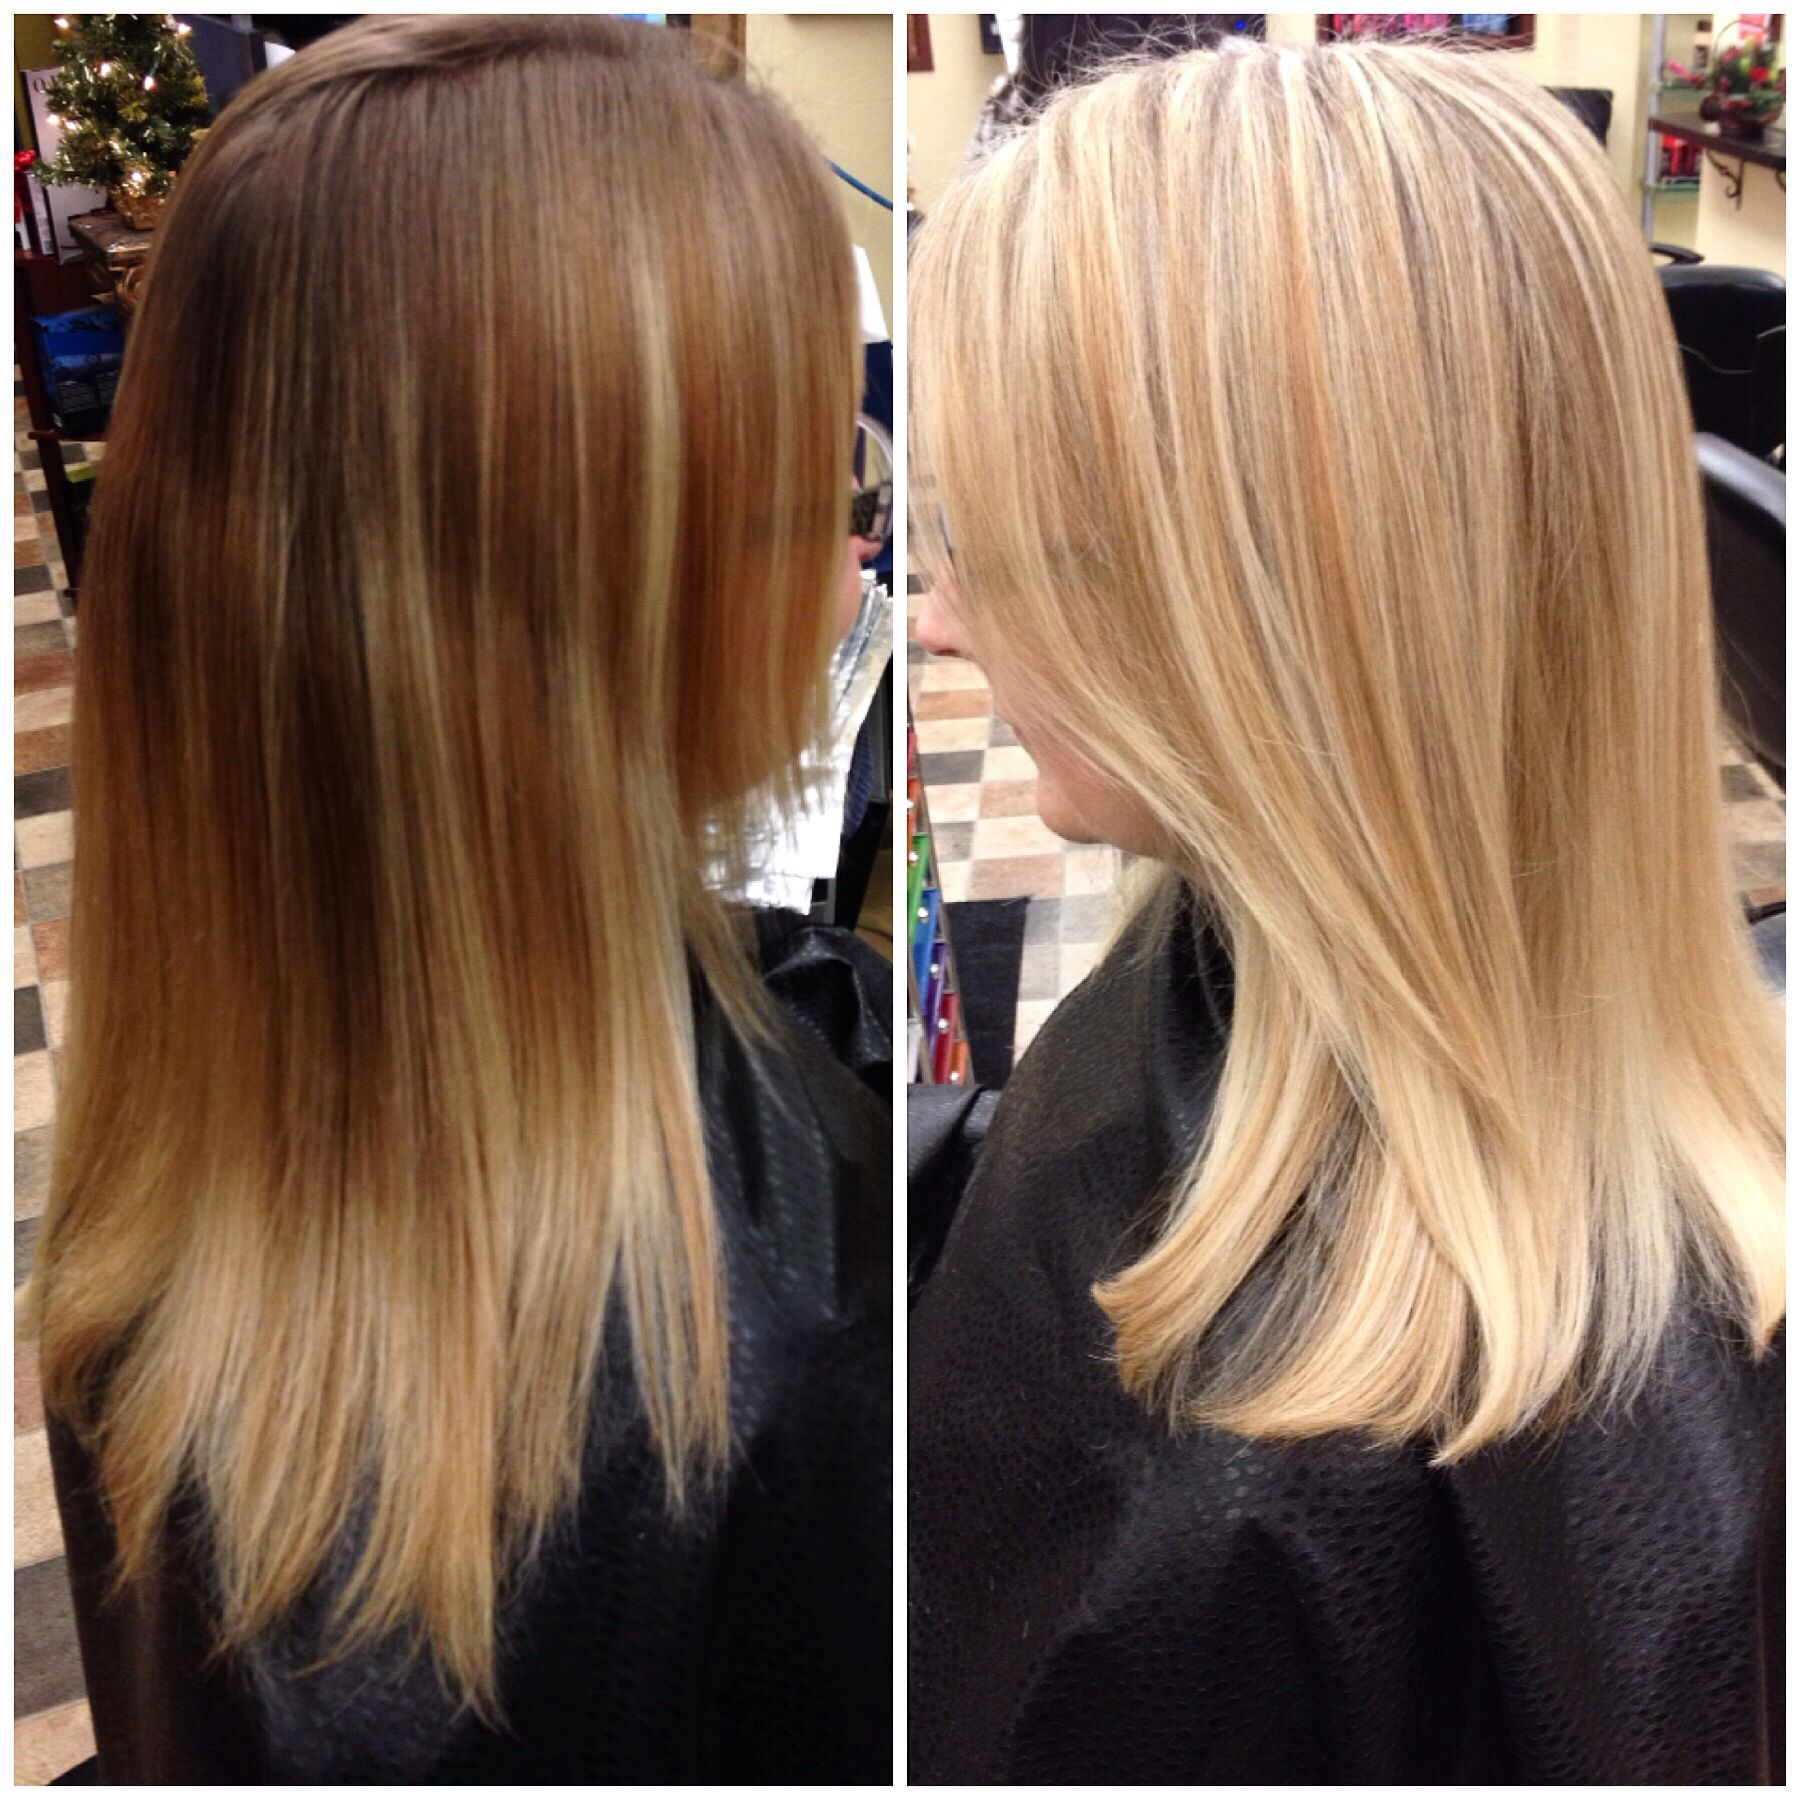 Before And After Dark Roots Lifted To A Nice Bright Blonde With A